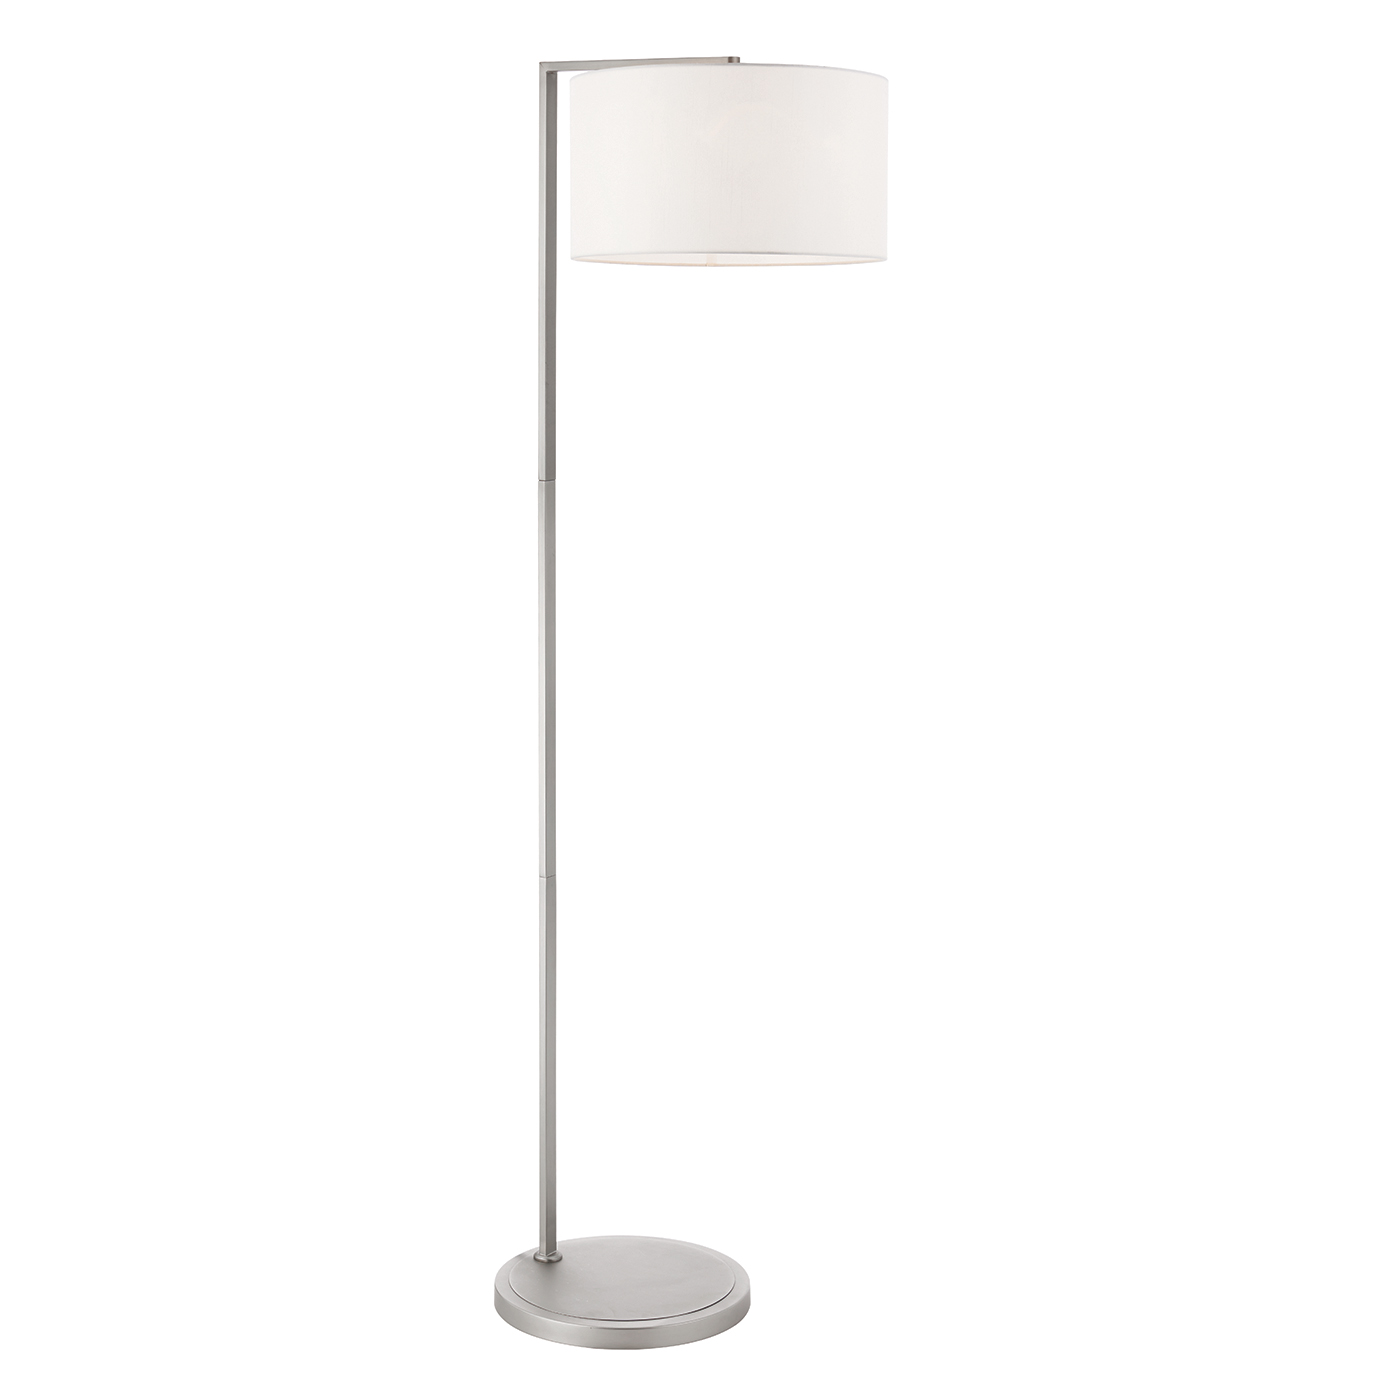 Endon Daley floor lamp 40W Matt nickel plate & vintage white faux silk